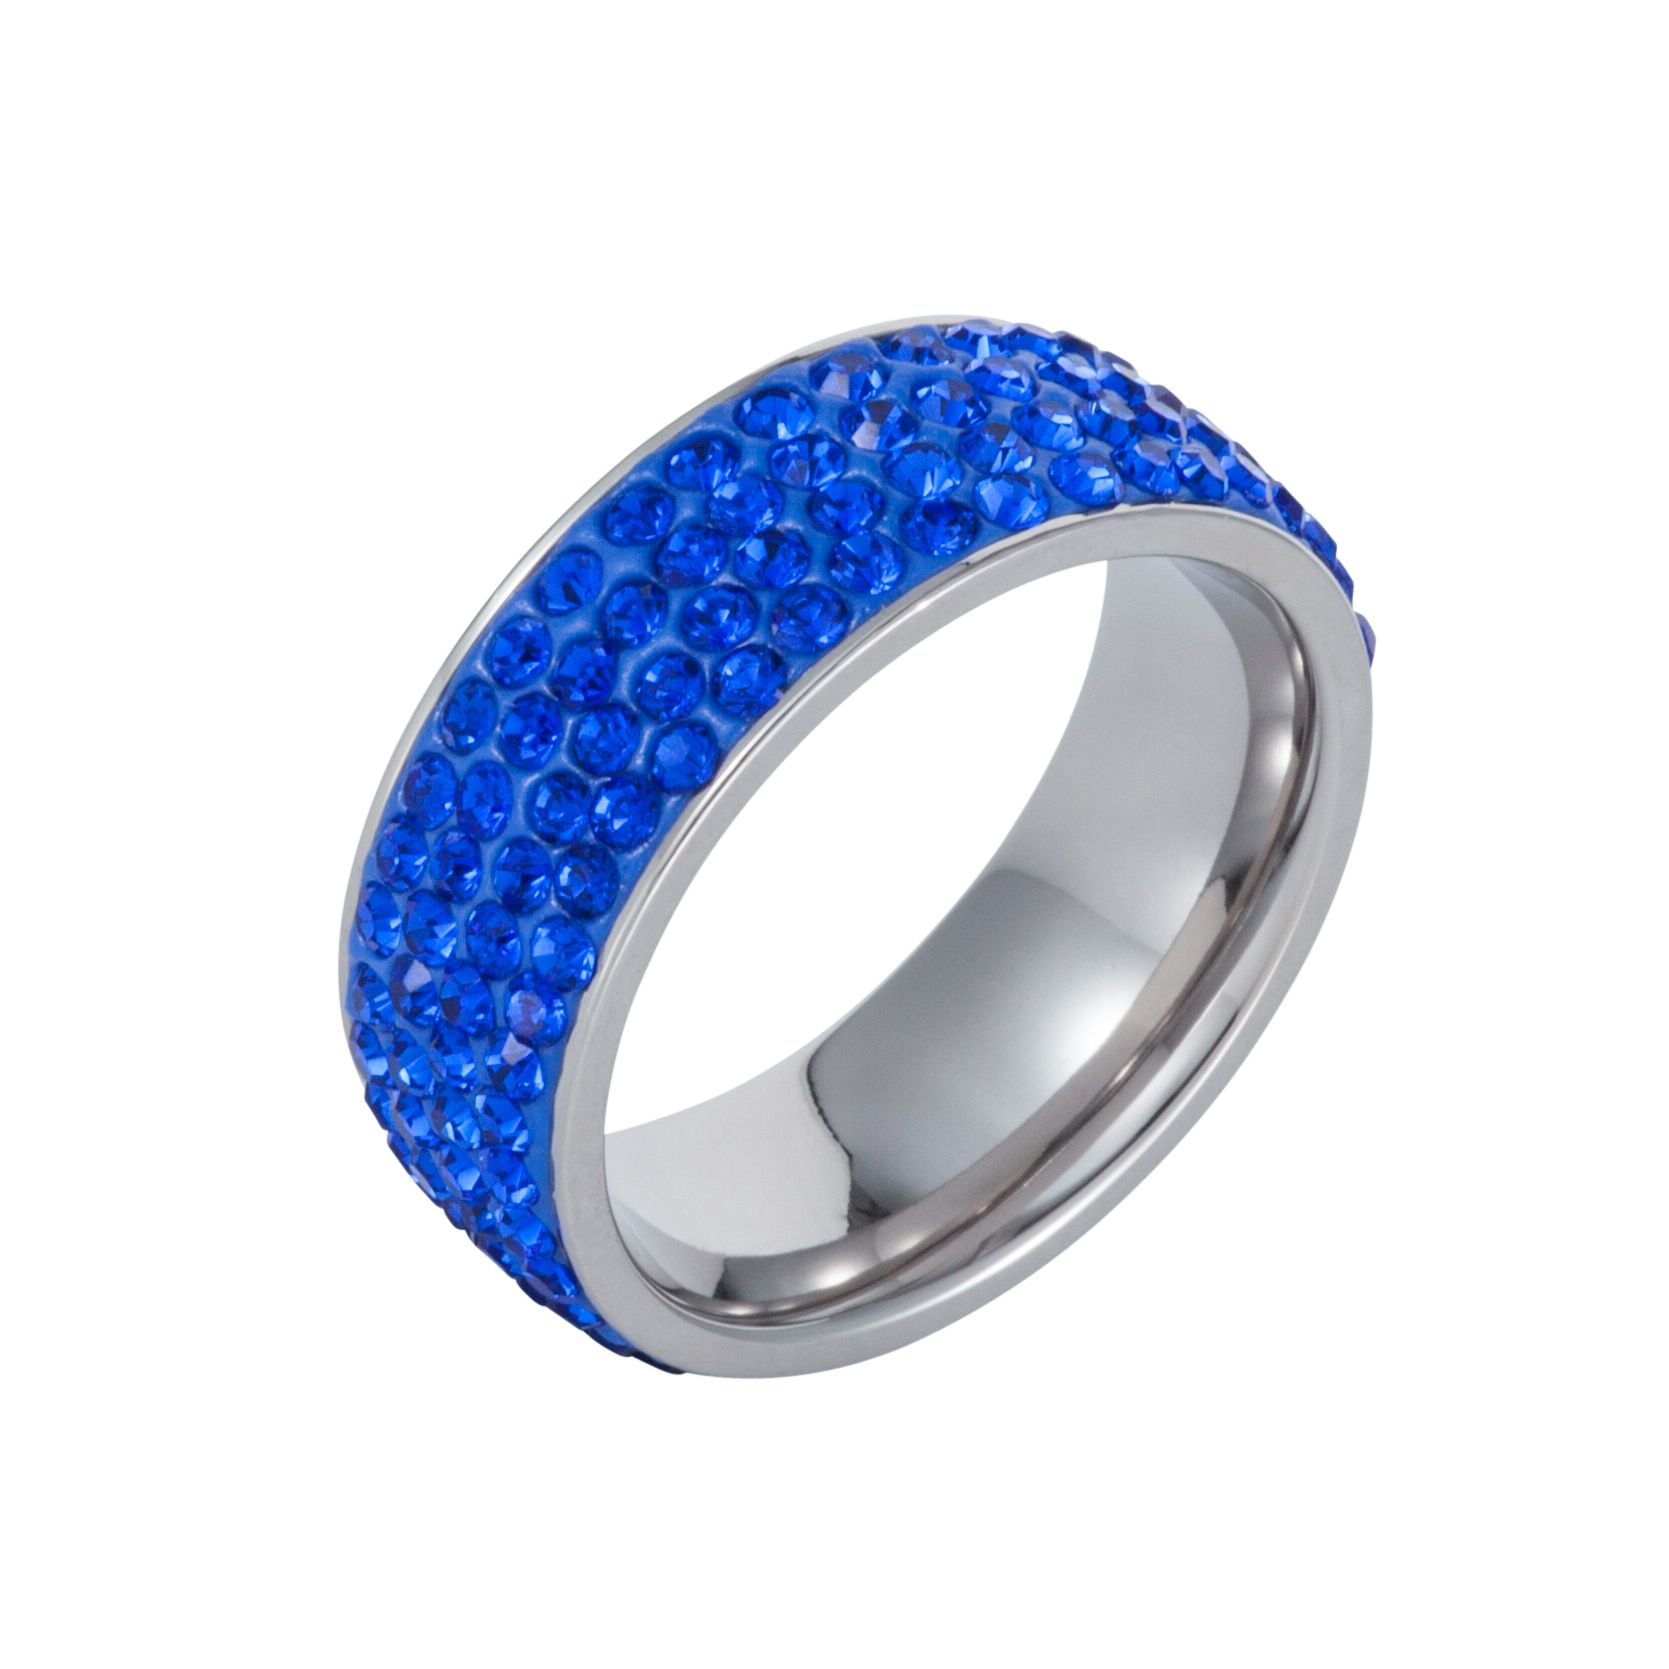 Stainless steel cubic zirconia sapphire ring